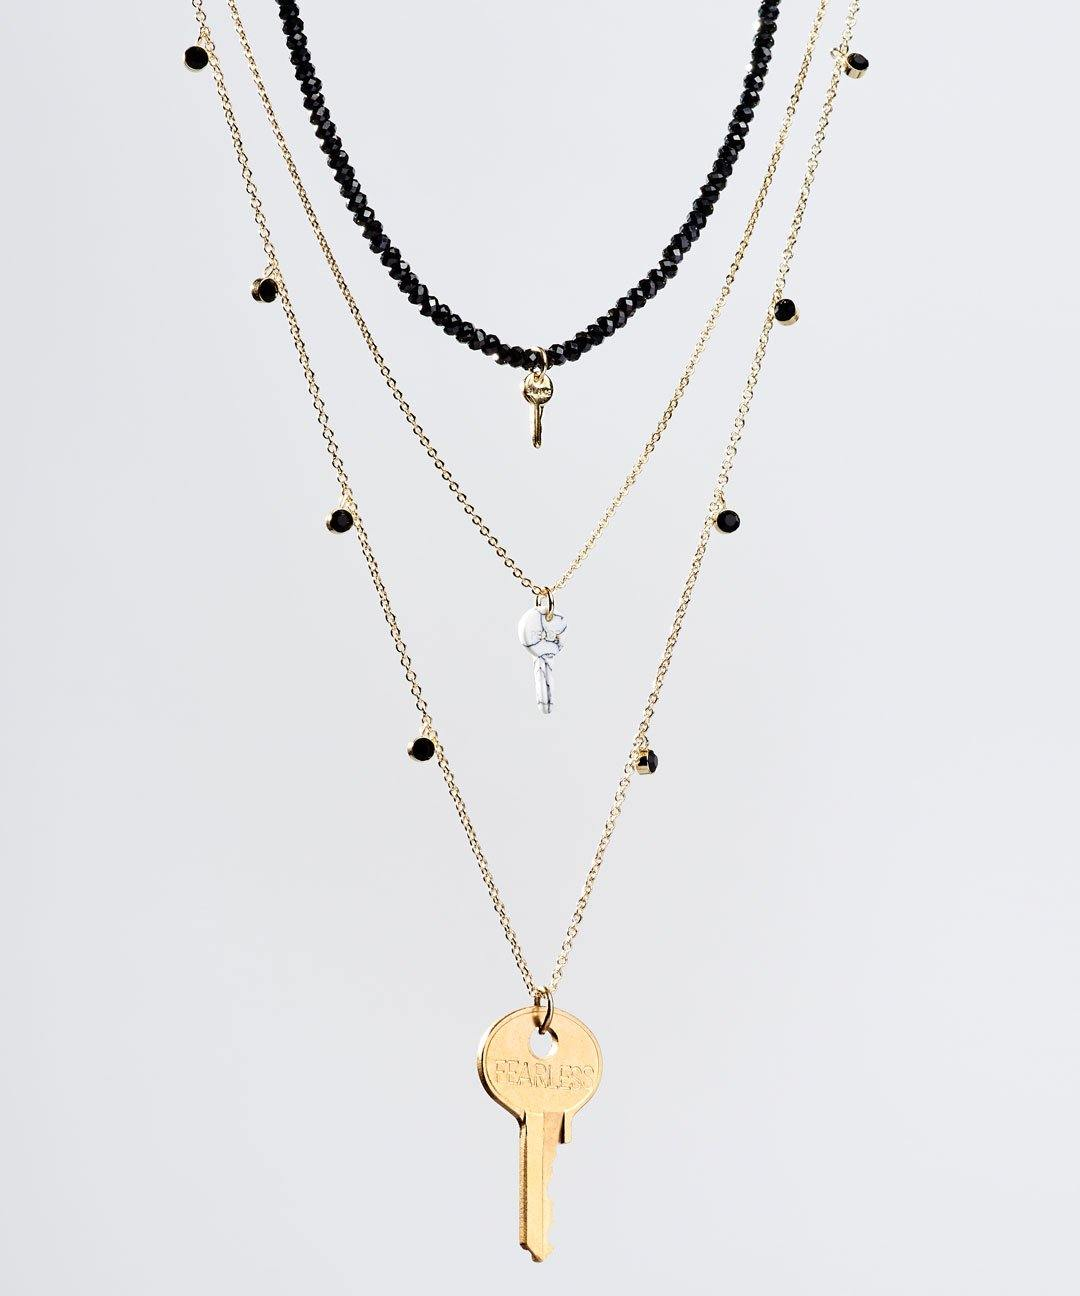 Onyx Stone Layered Necklace Set Necklaces The Giving Keys Onyx Various